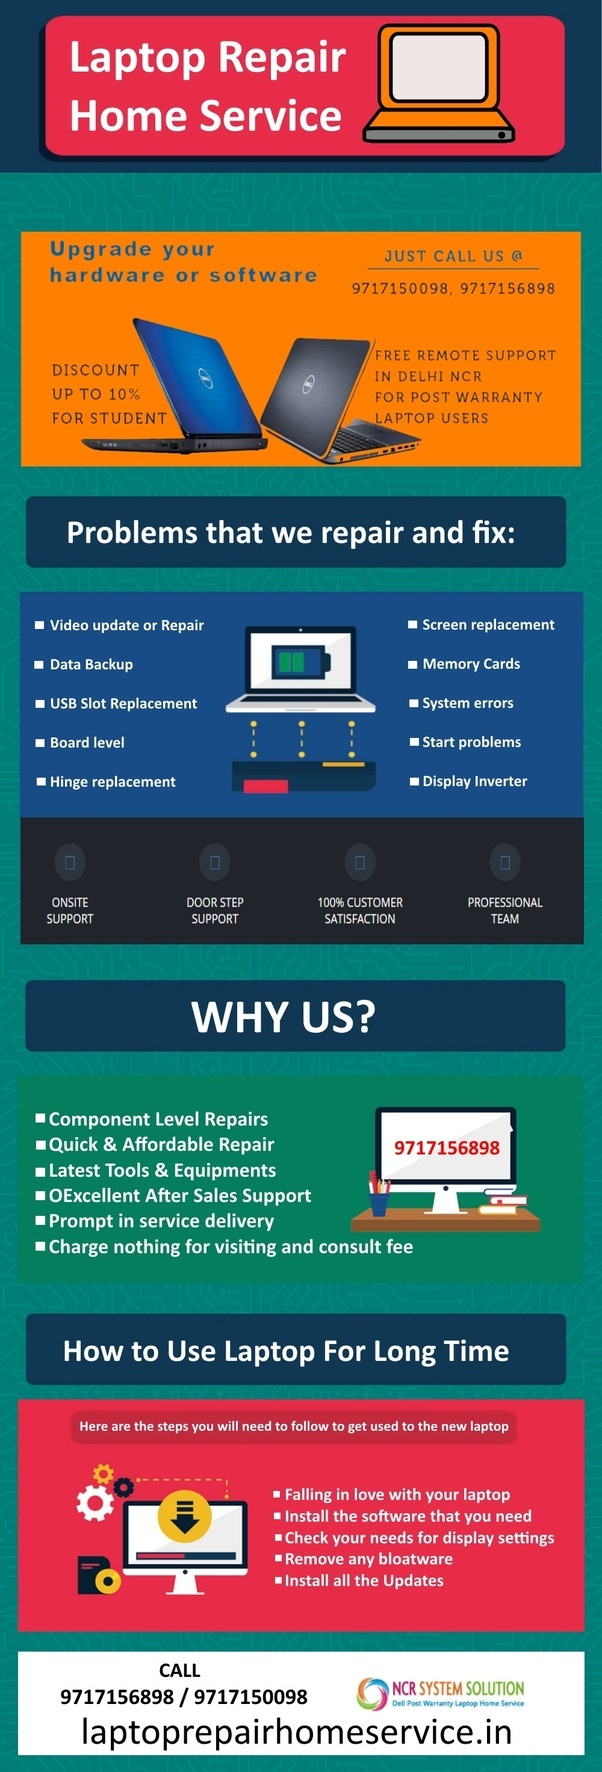 What Is Dells Minimum Service Charge For Laptop Repair In Delhi Ncr As Well Hp Charger Schematic Diagram On Dell Battery If You Are Looking After Warranty Your I Would Recommend Center One Of The Best Options